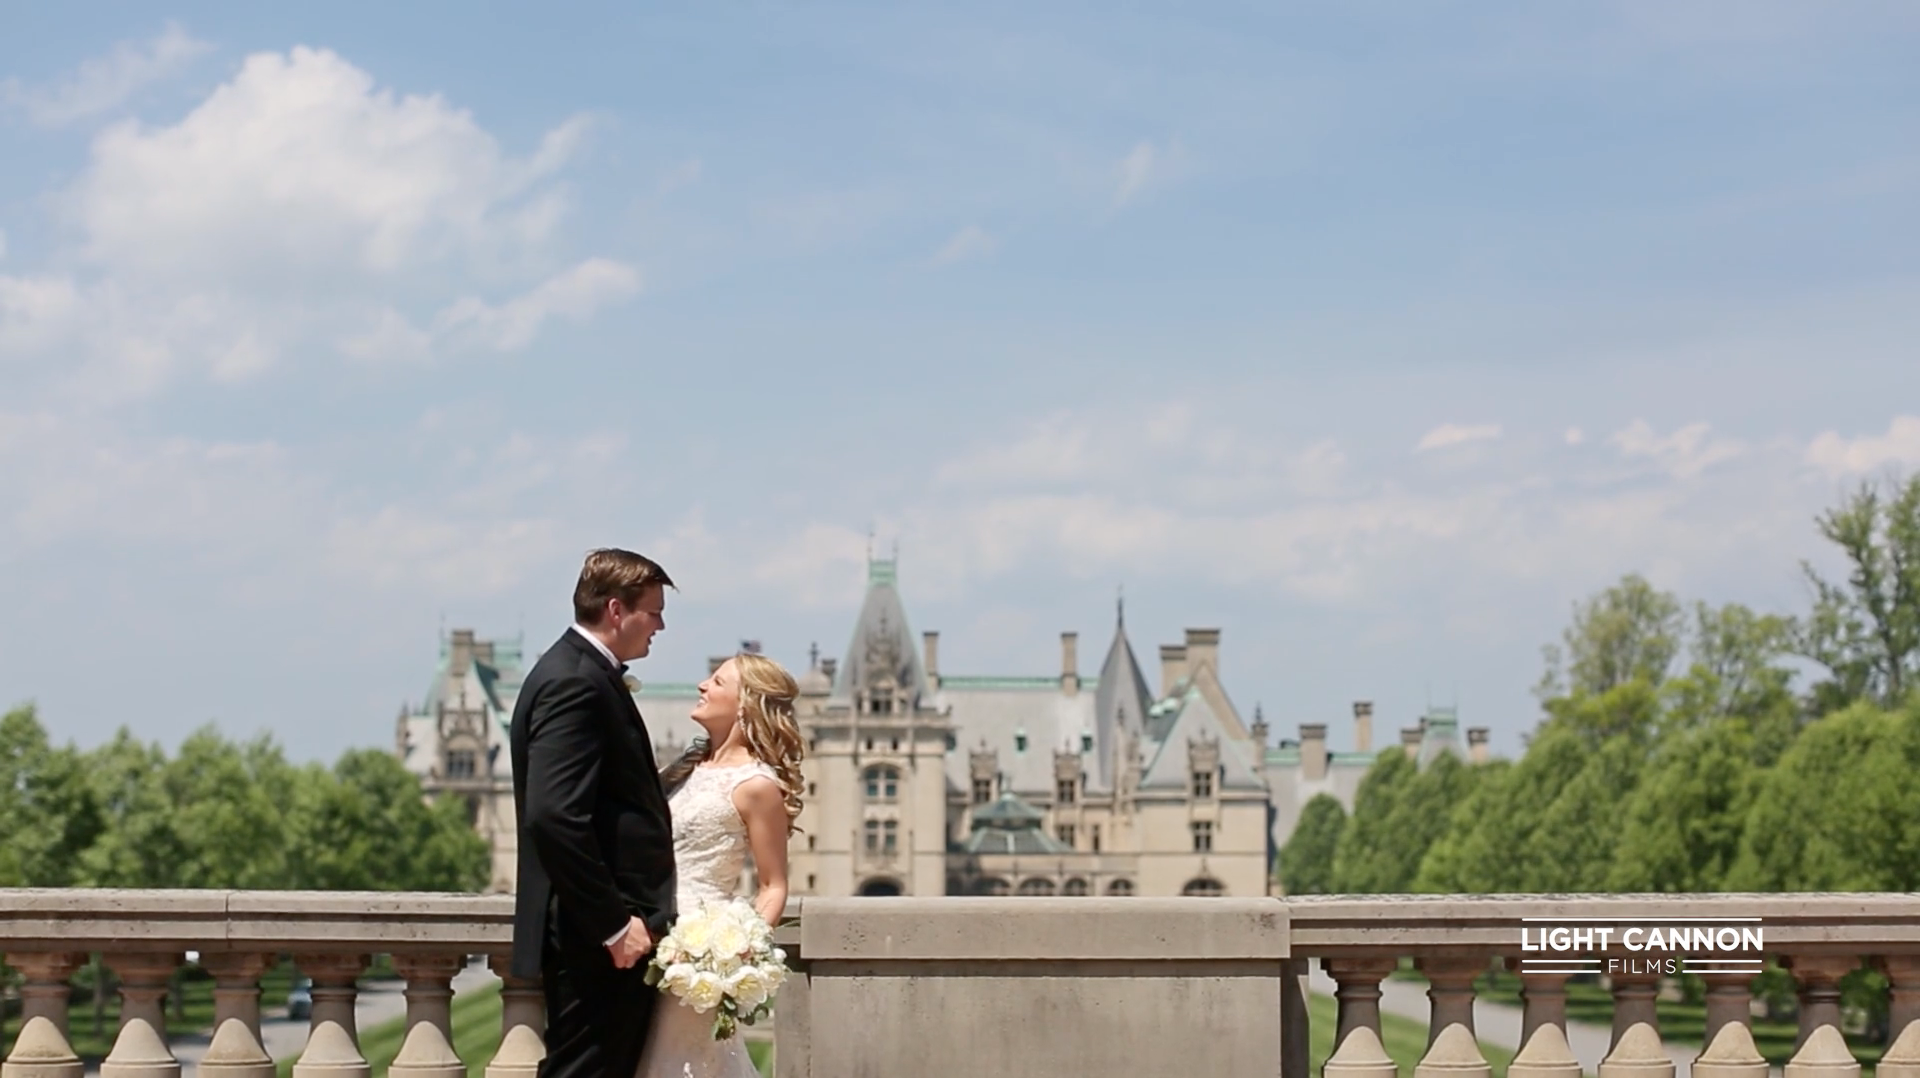 Kelly + Caleb | Asheville, North Carolina | Biltmore Estate, Asheville